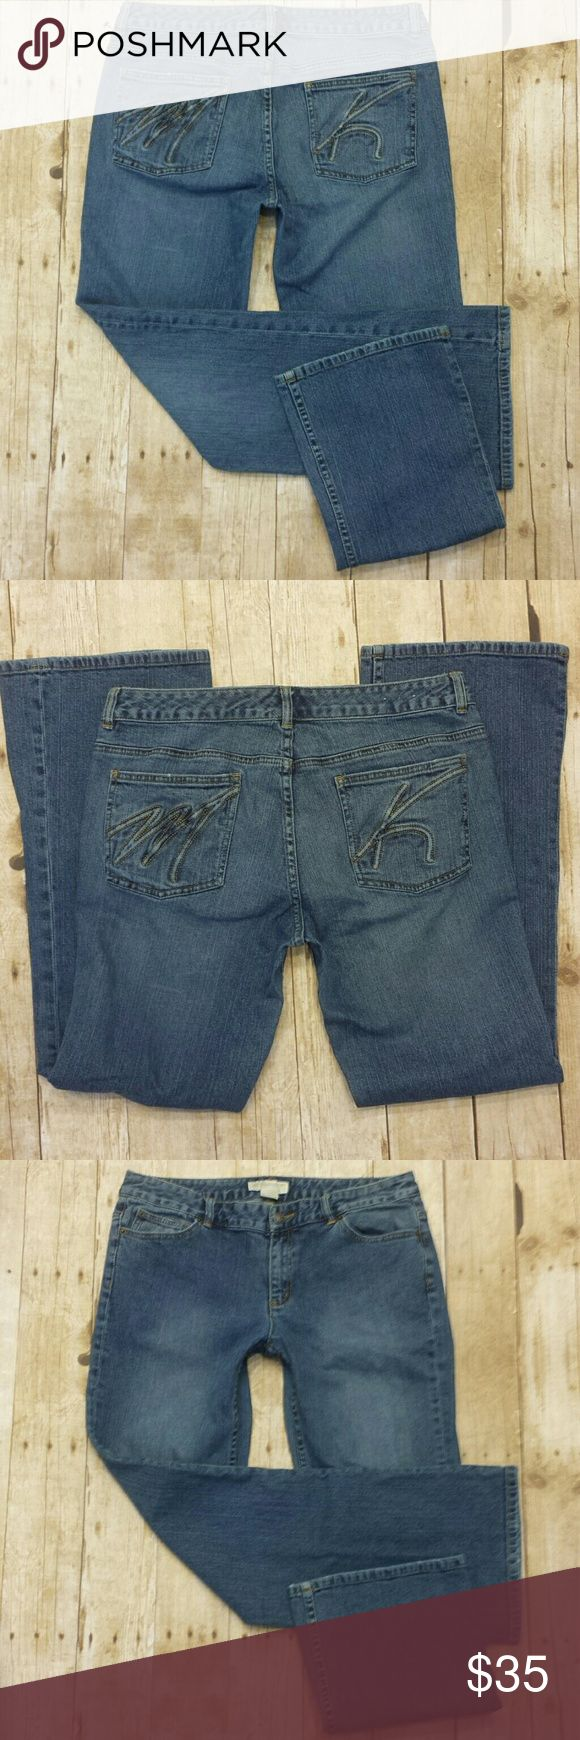 """Michael Kors Jeans Michael (Michael) Kors jeans in a medium blue wash.  Embroidered & embossed pockets with M on one and K on the other. Preowned in good condition with no rips, holes, tears or stains.  Clean original hems. Great jeans featuring a mid/high rise in both the front and the back. Hip & booty space and not narrow and low like some designer brands can be, but please use measurements below to ensure your perfect fit. 98% cotton, 2% spandex.  Measurements  Waist 17.5""""  Rise 9""""…"""